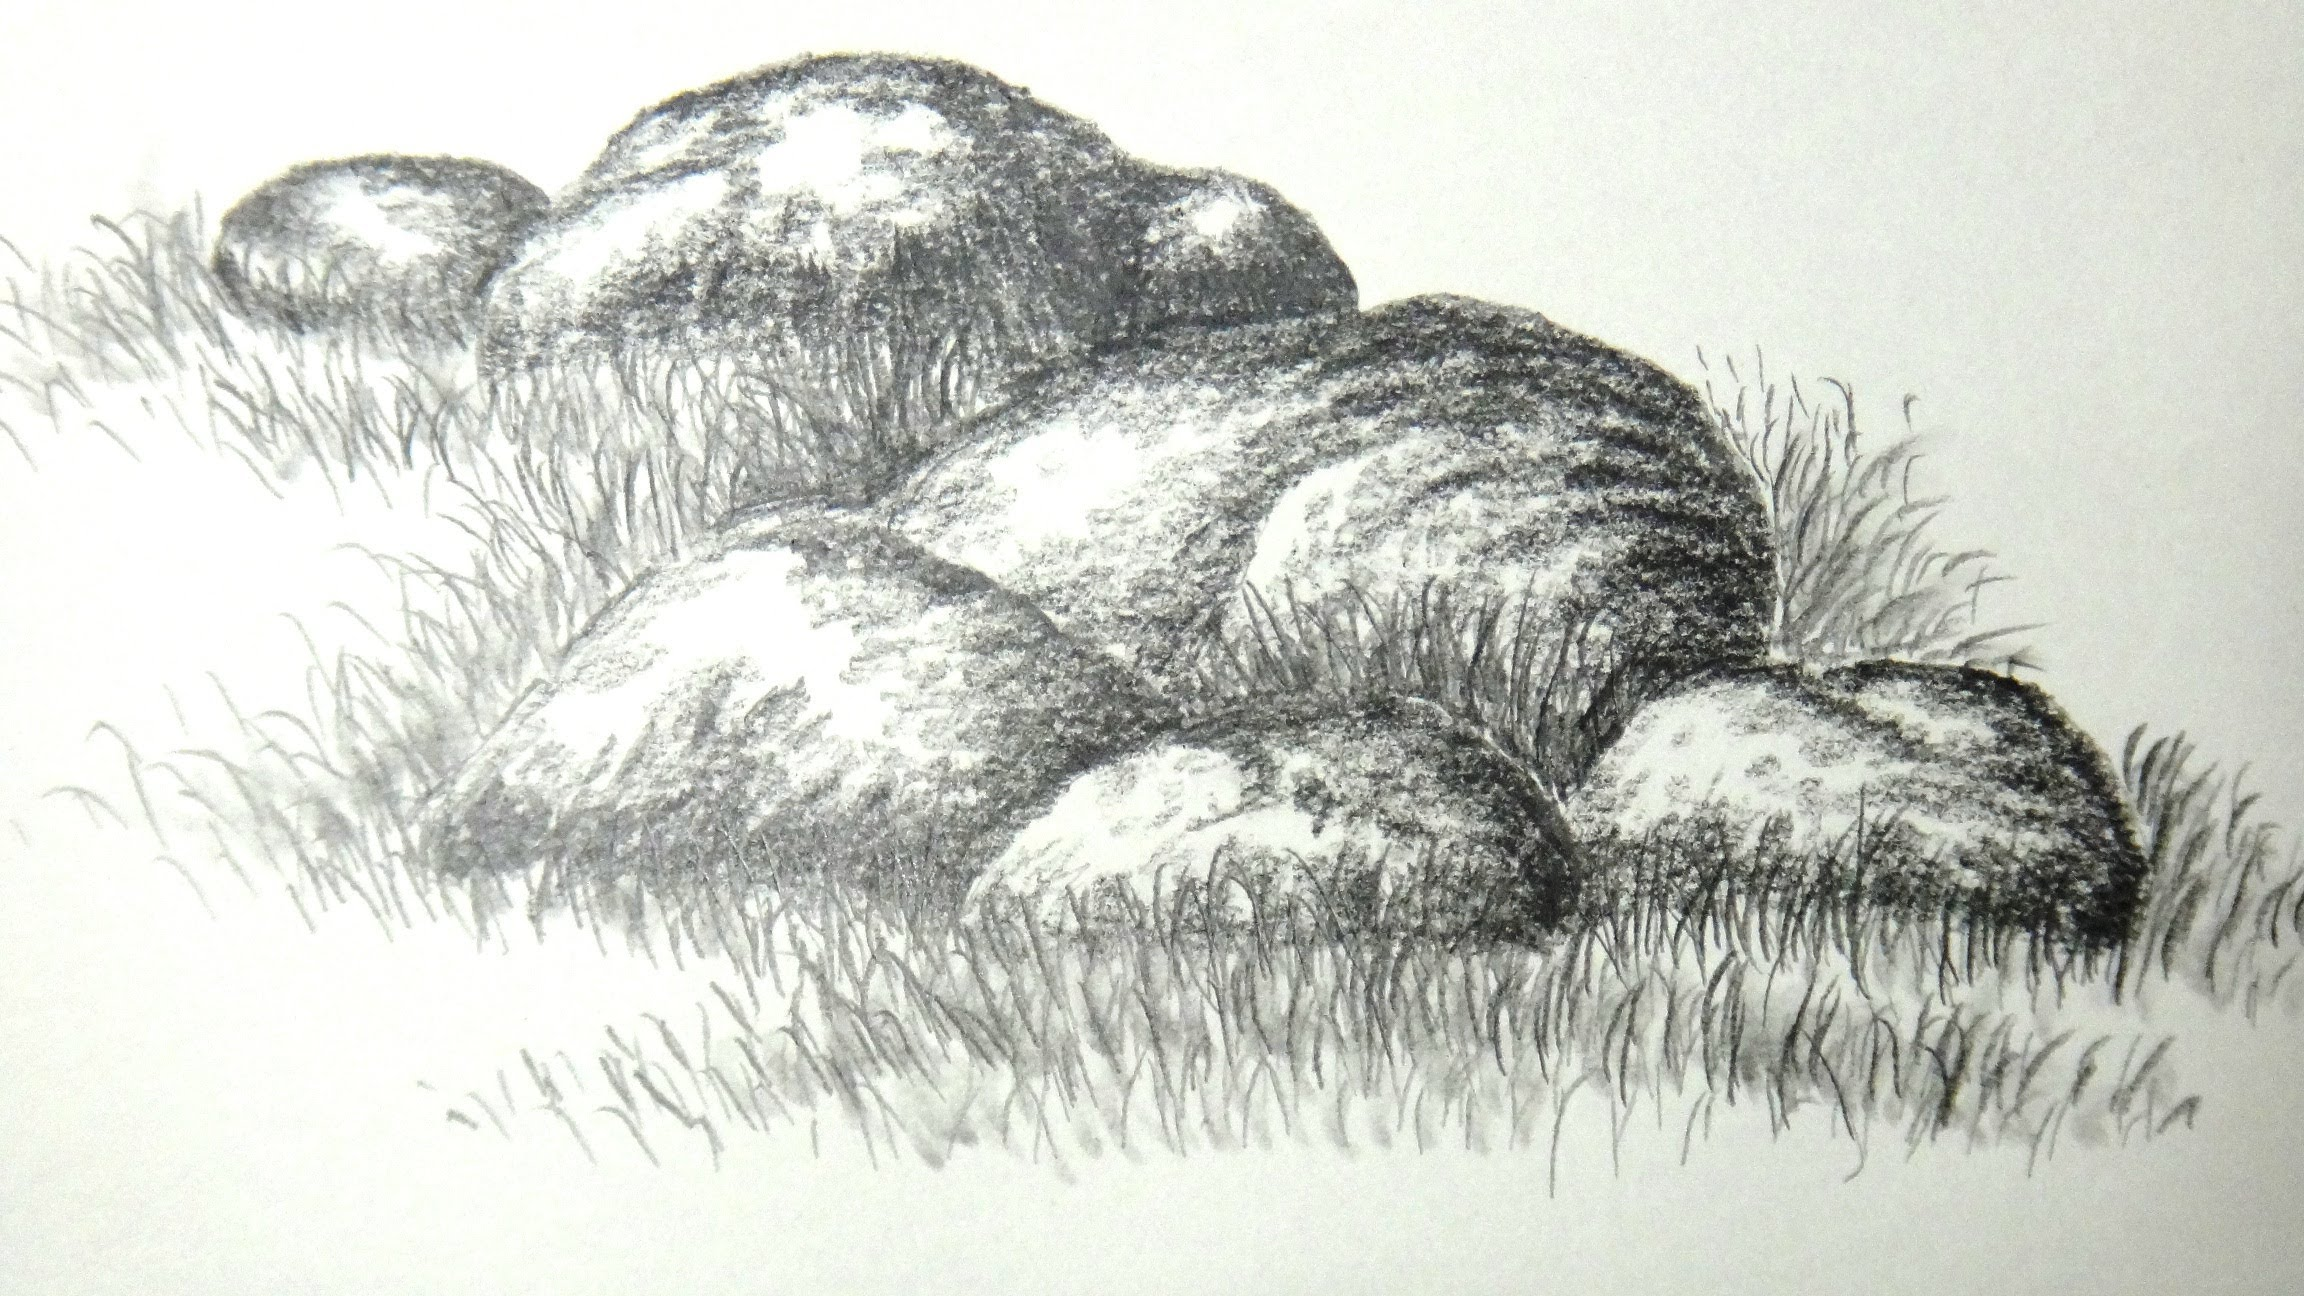 Drawn stone  rocks or with pencil